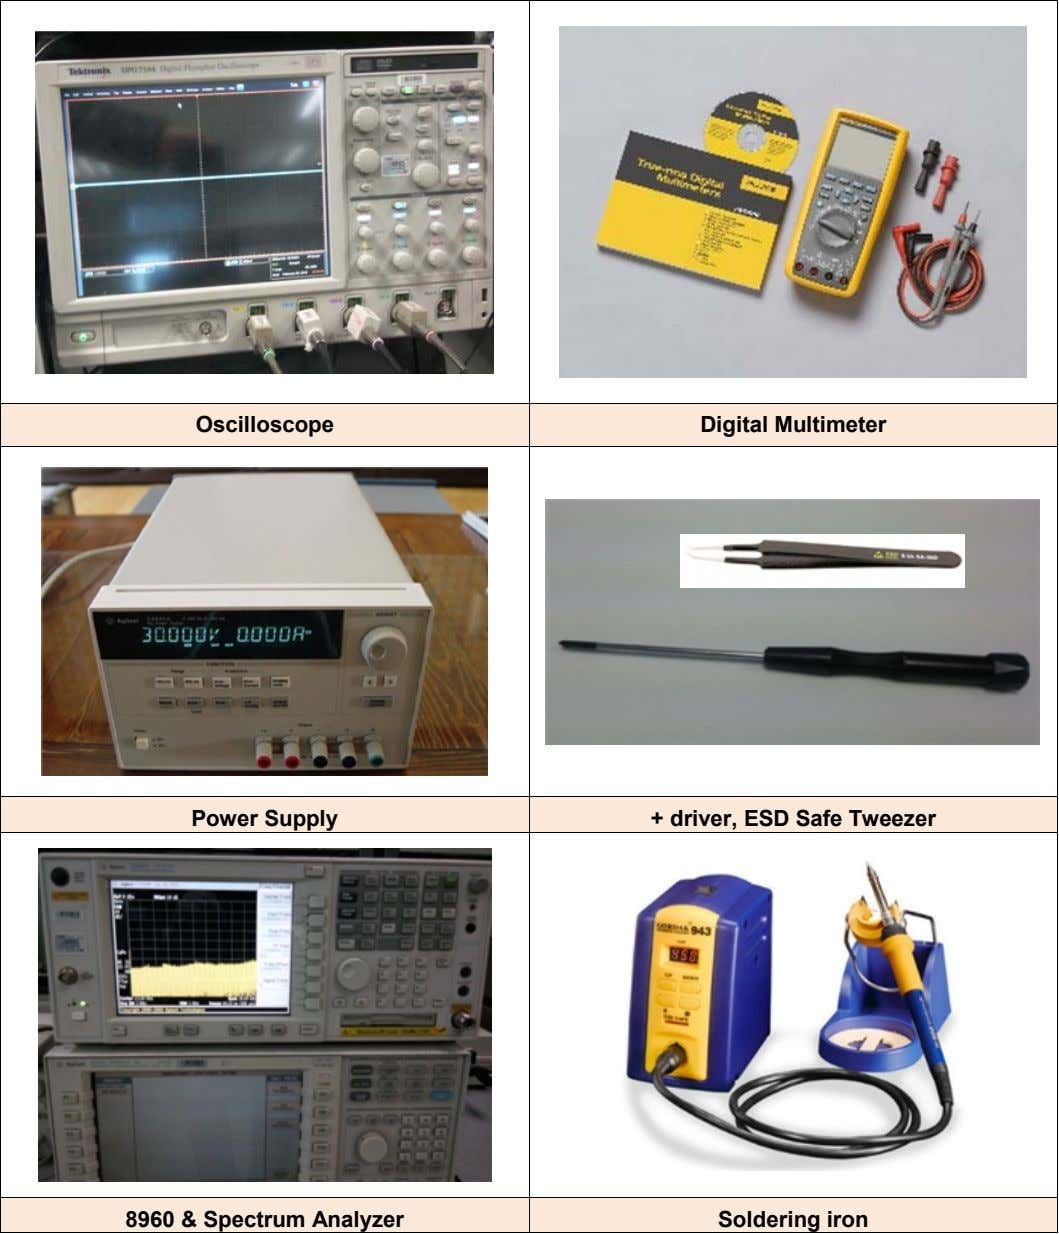 Oscilloscope Digital Multimeter Power Supply + driver, ESD Safe Tweezer 8960 & Spectrum Analyzer Soldering